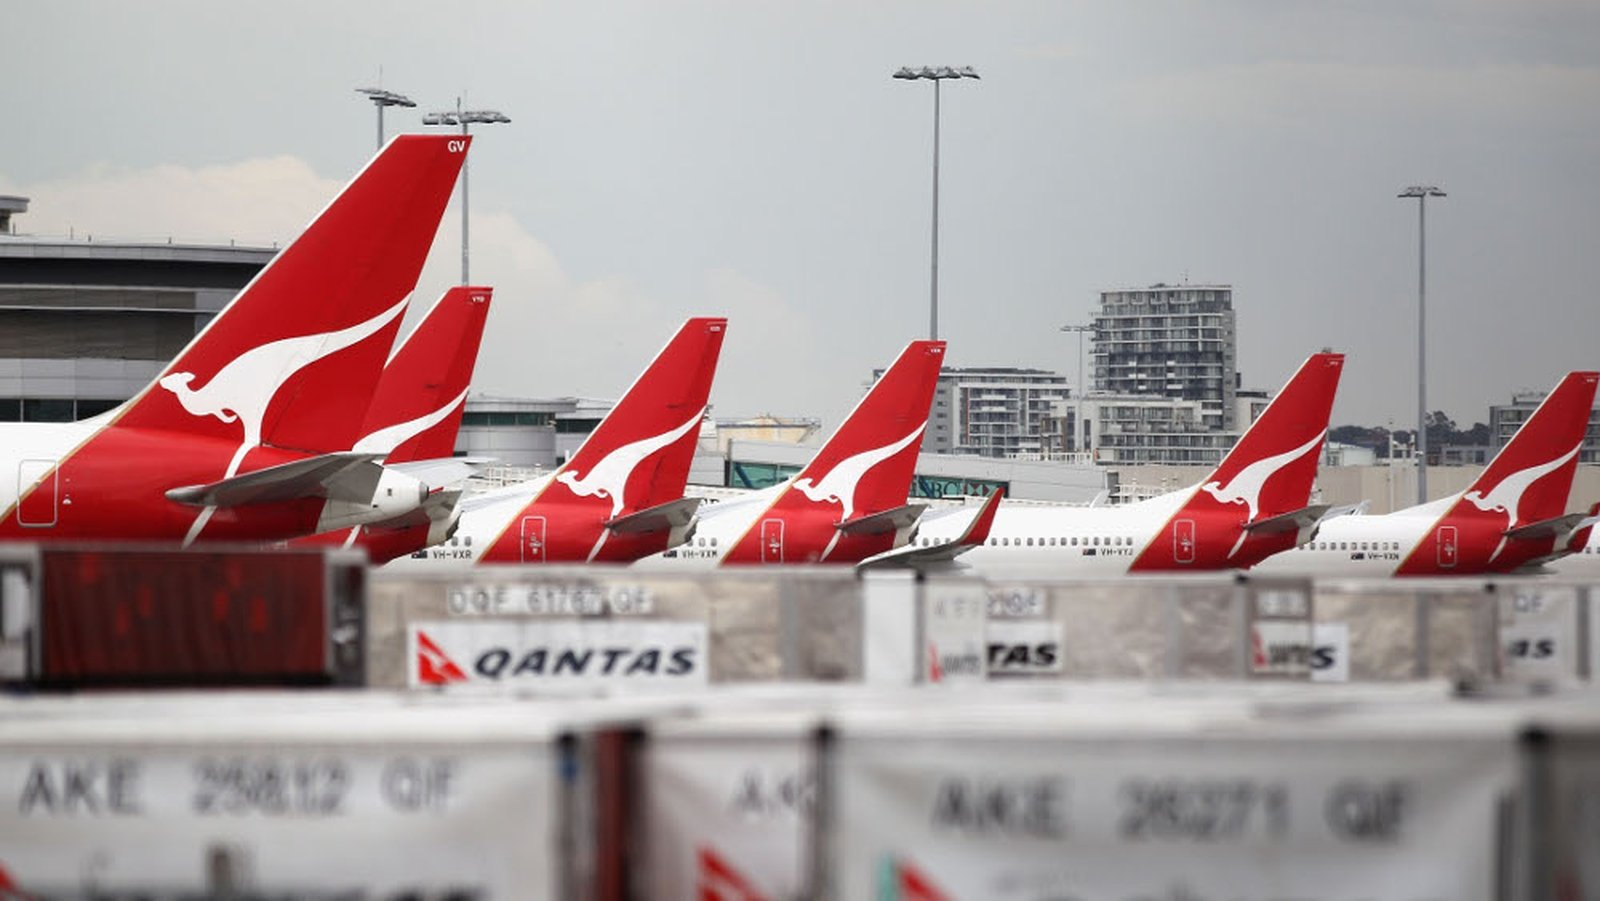 Qantas flights resume after tribunal hearing